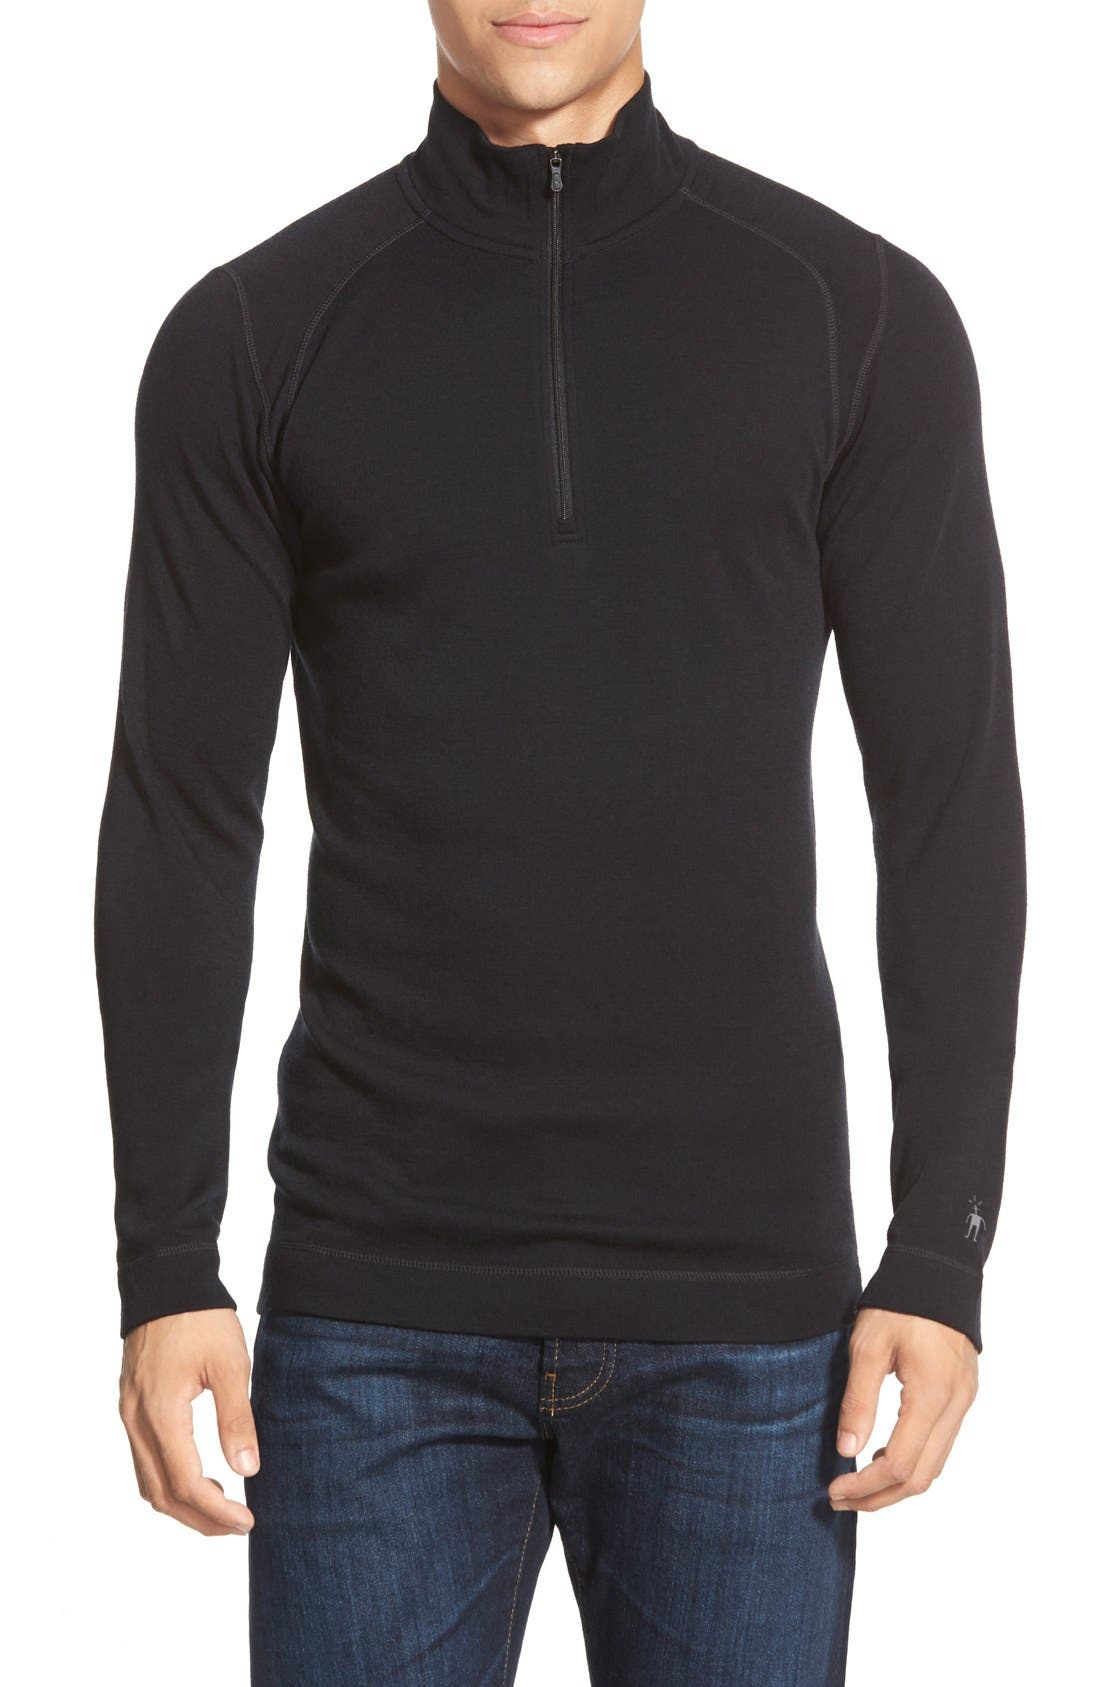 Merino 250 Base Layer Quarter Zip Pullover,                             Main thumbnail 1, color,                             Black